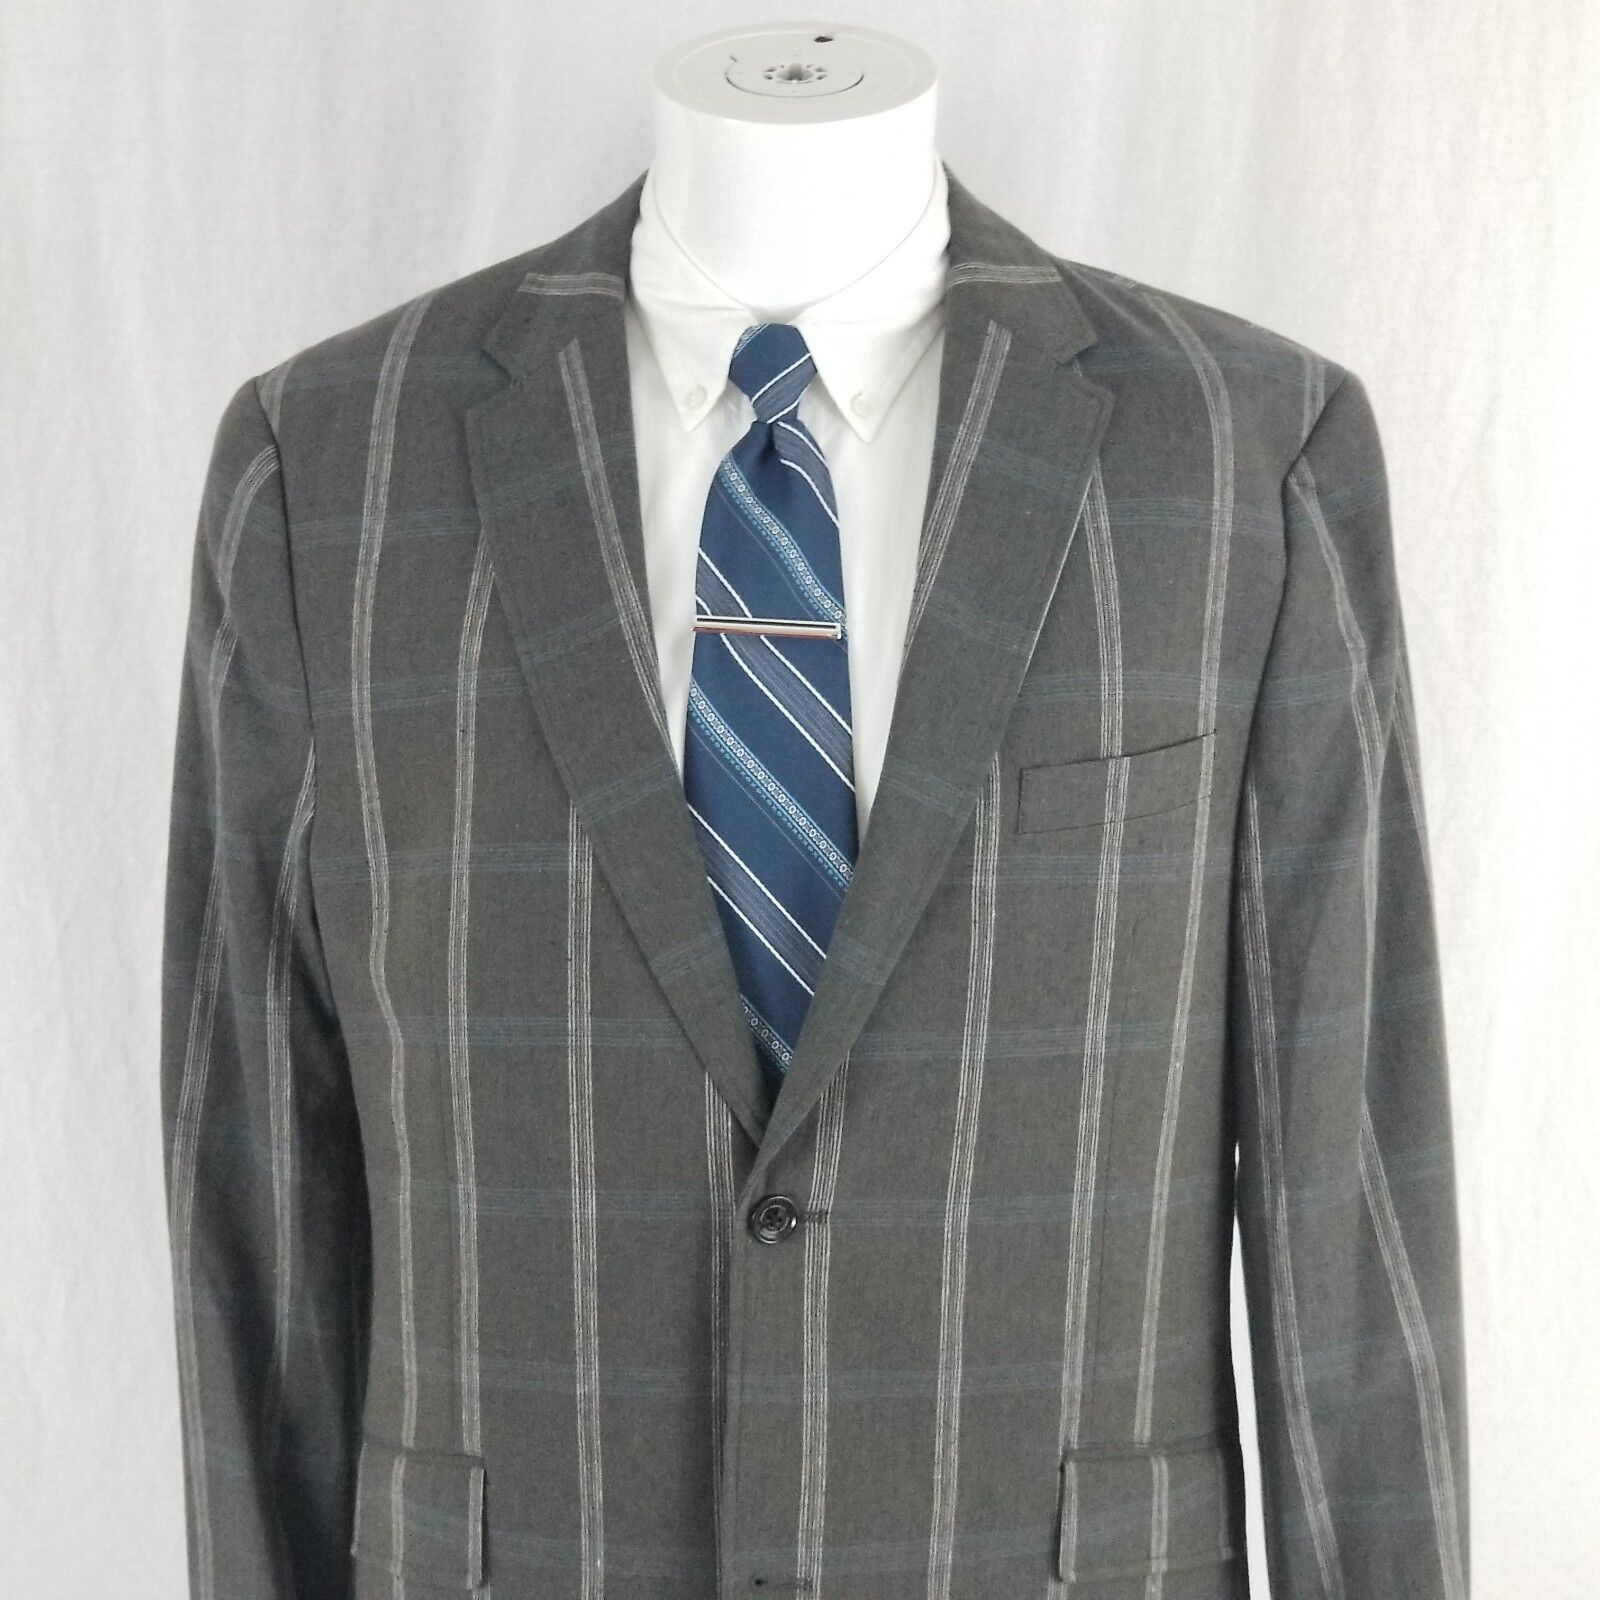 Joseph Abboud NWT MSRP 205 40L grau PLAID windowpane LINEN COTTON XLT tall f46